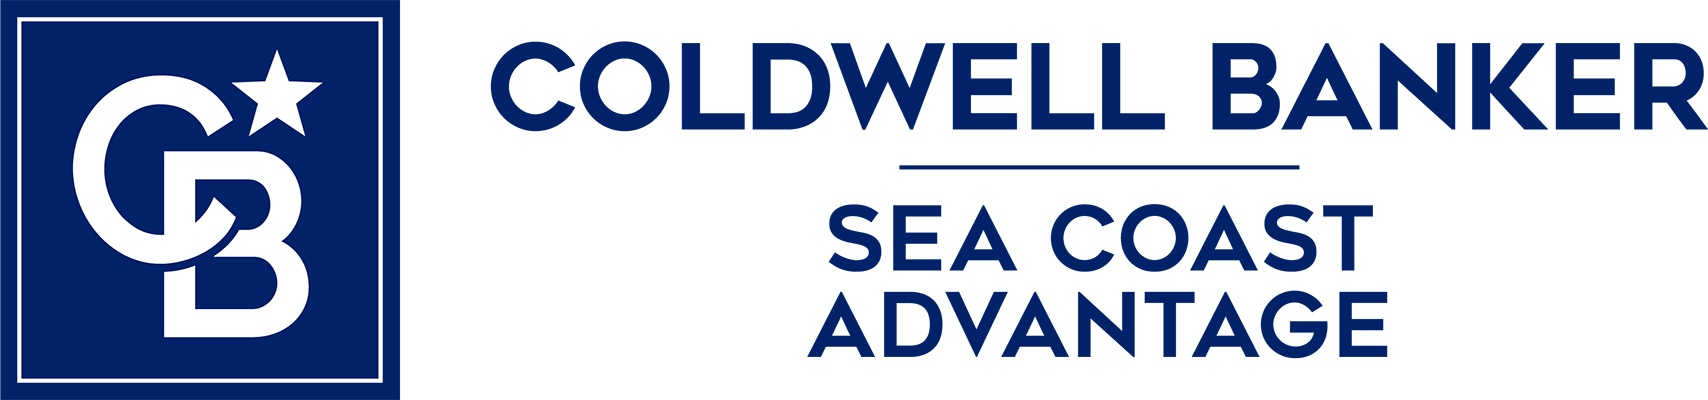 David Leinwand - Coldwell Banker Sea Coast Advantage Realty